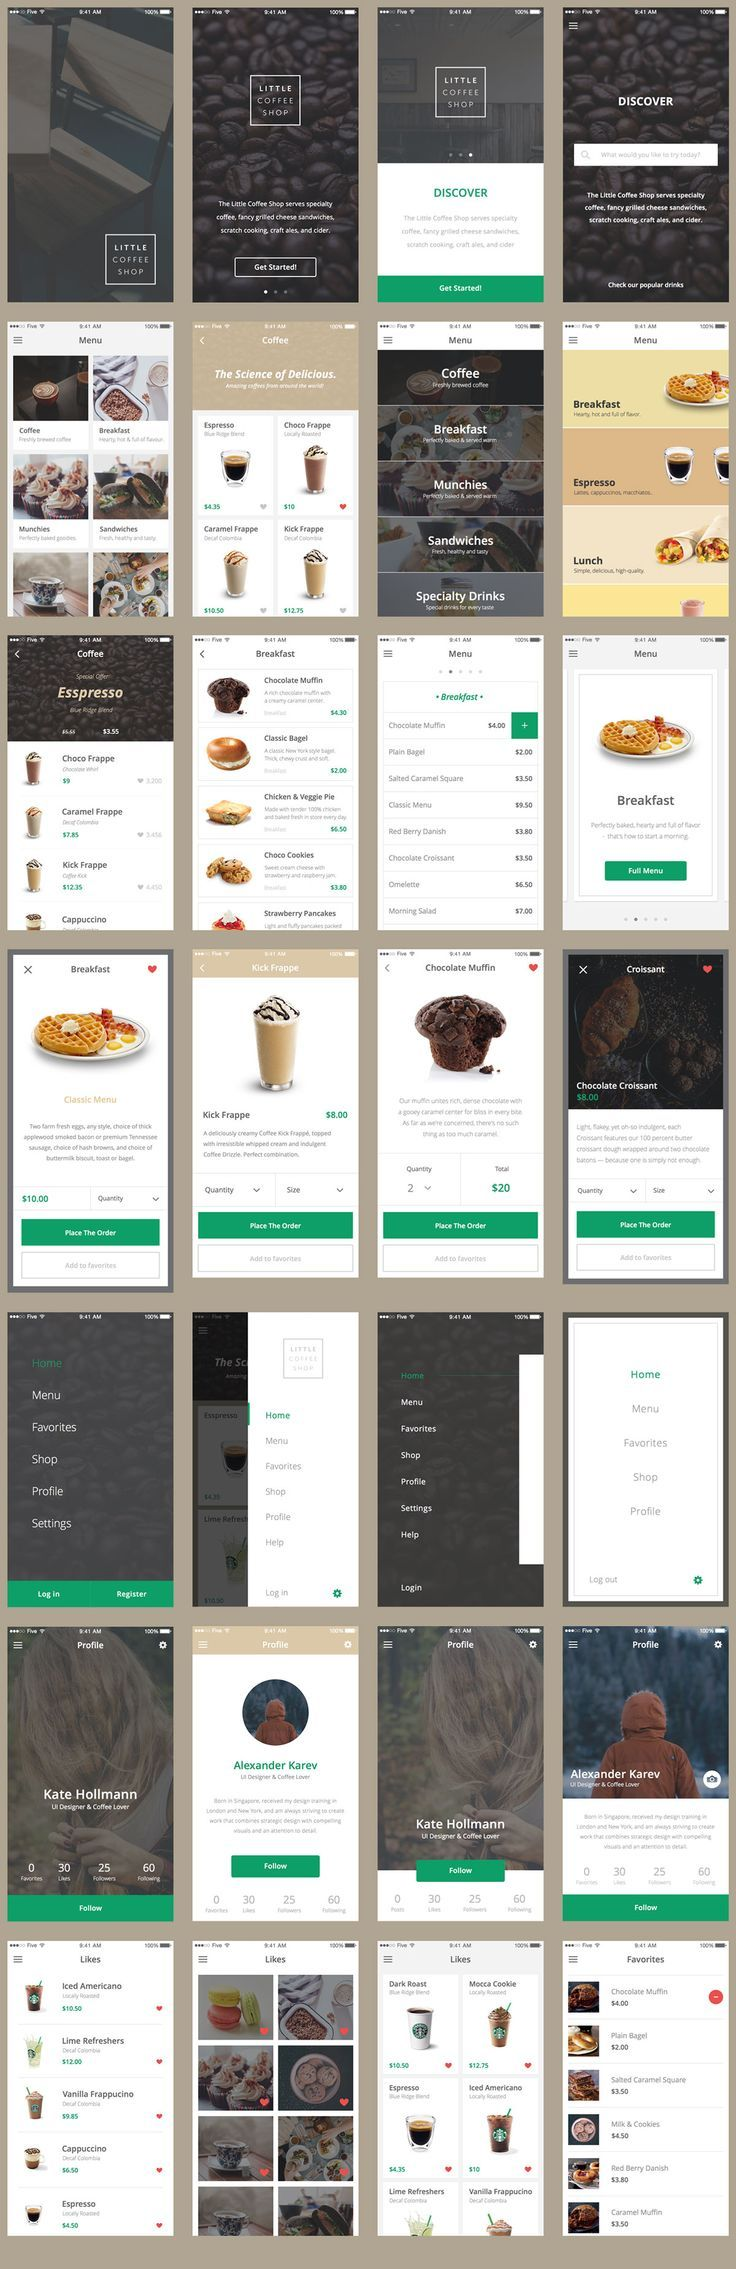 Check out & download this Ecommerce Mobile App #UI #Kit – Free #UI kit for mobile app designs for ecommerce industry.  Hope you like it! http://goo.gl/M30HJU: